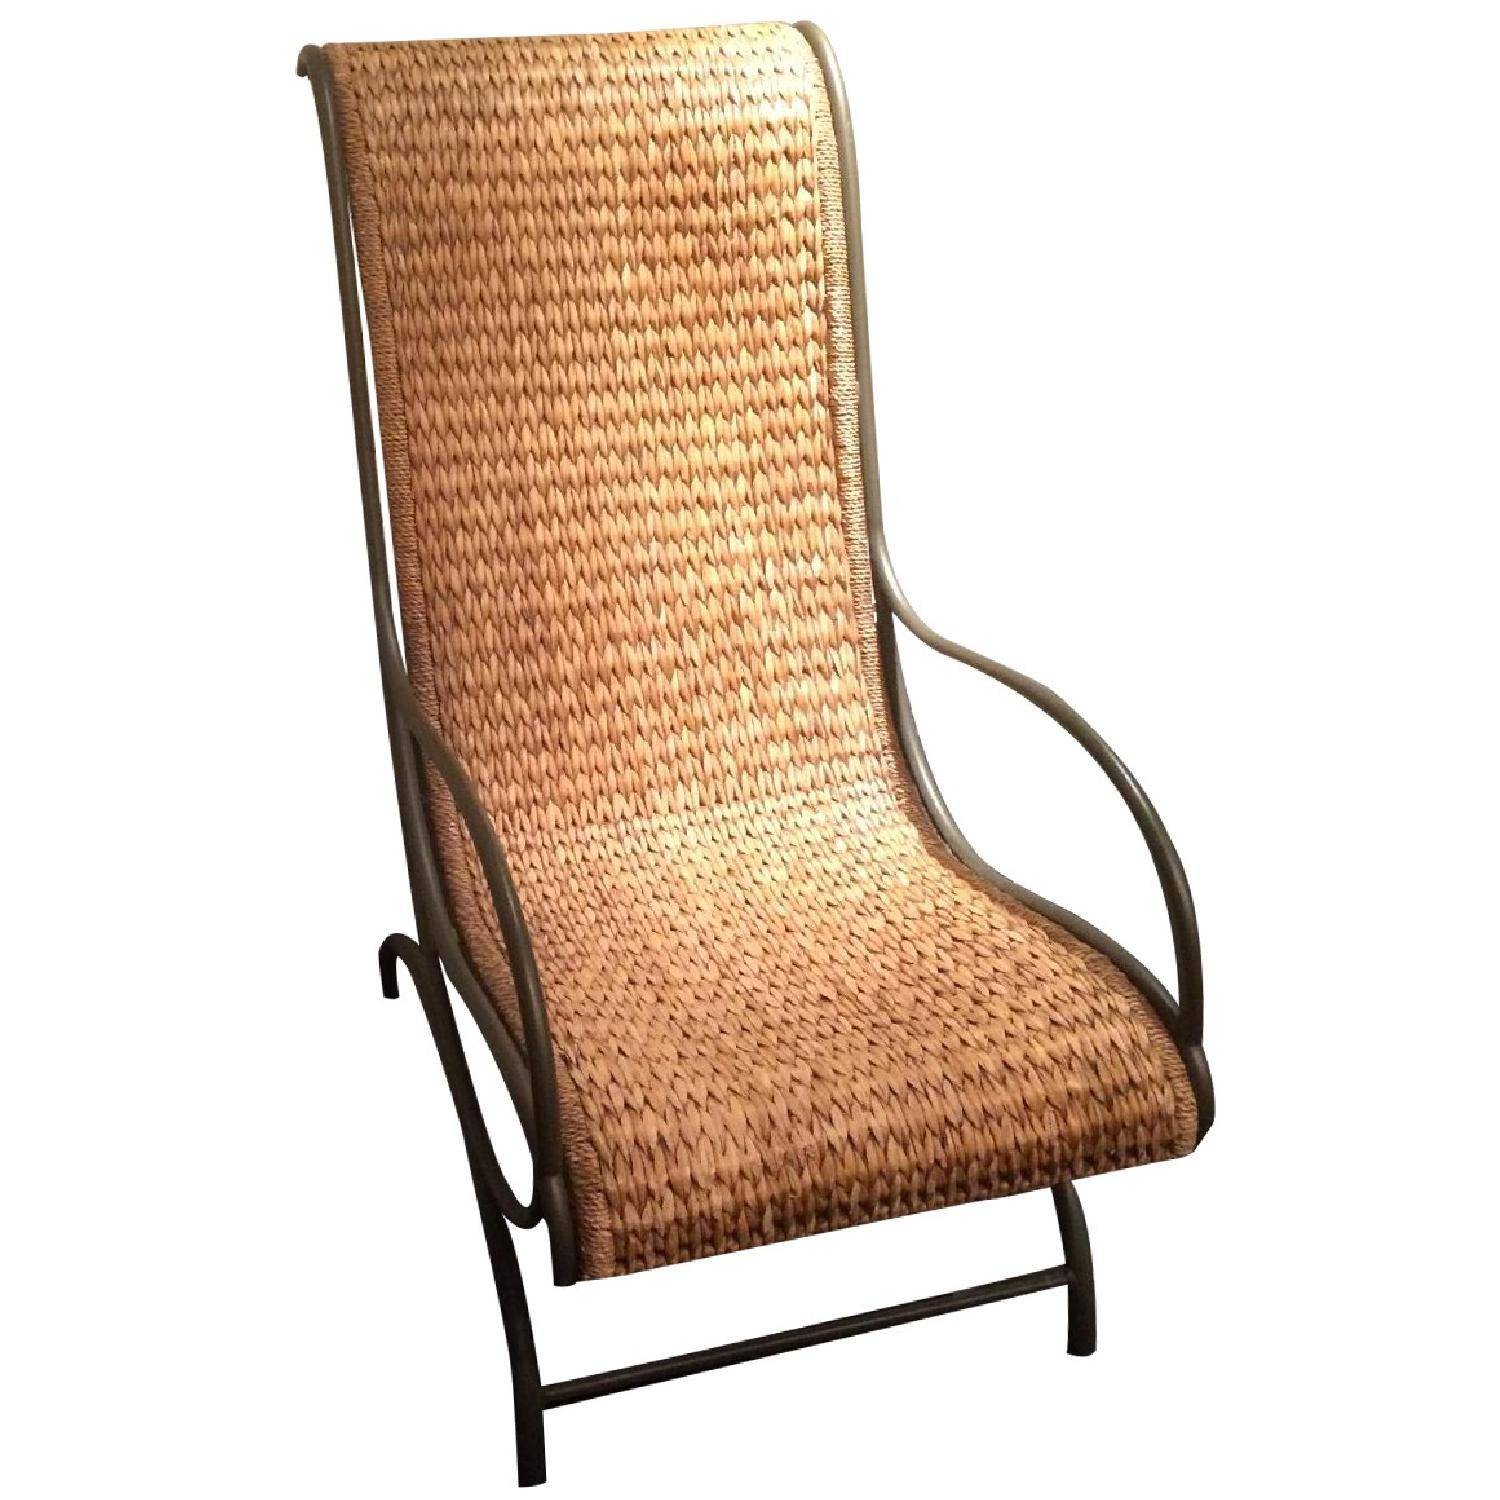 Wicker Chair - image-0